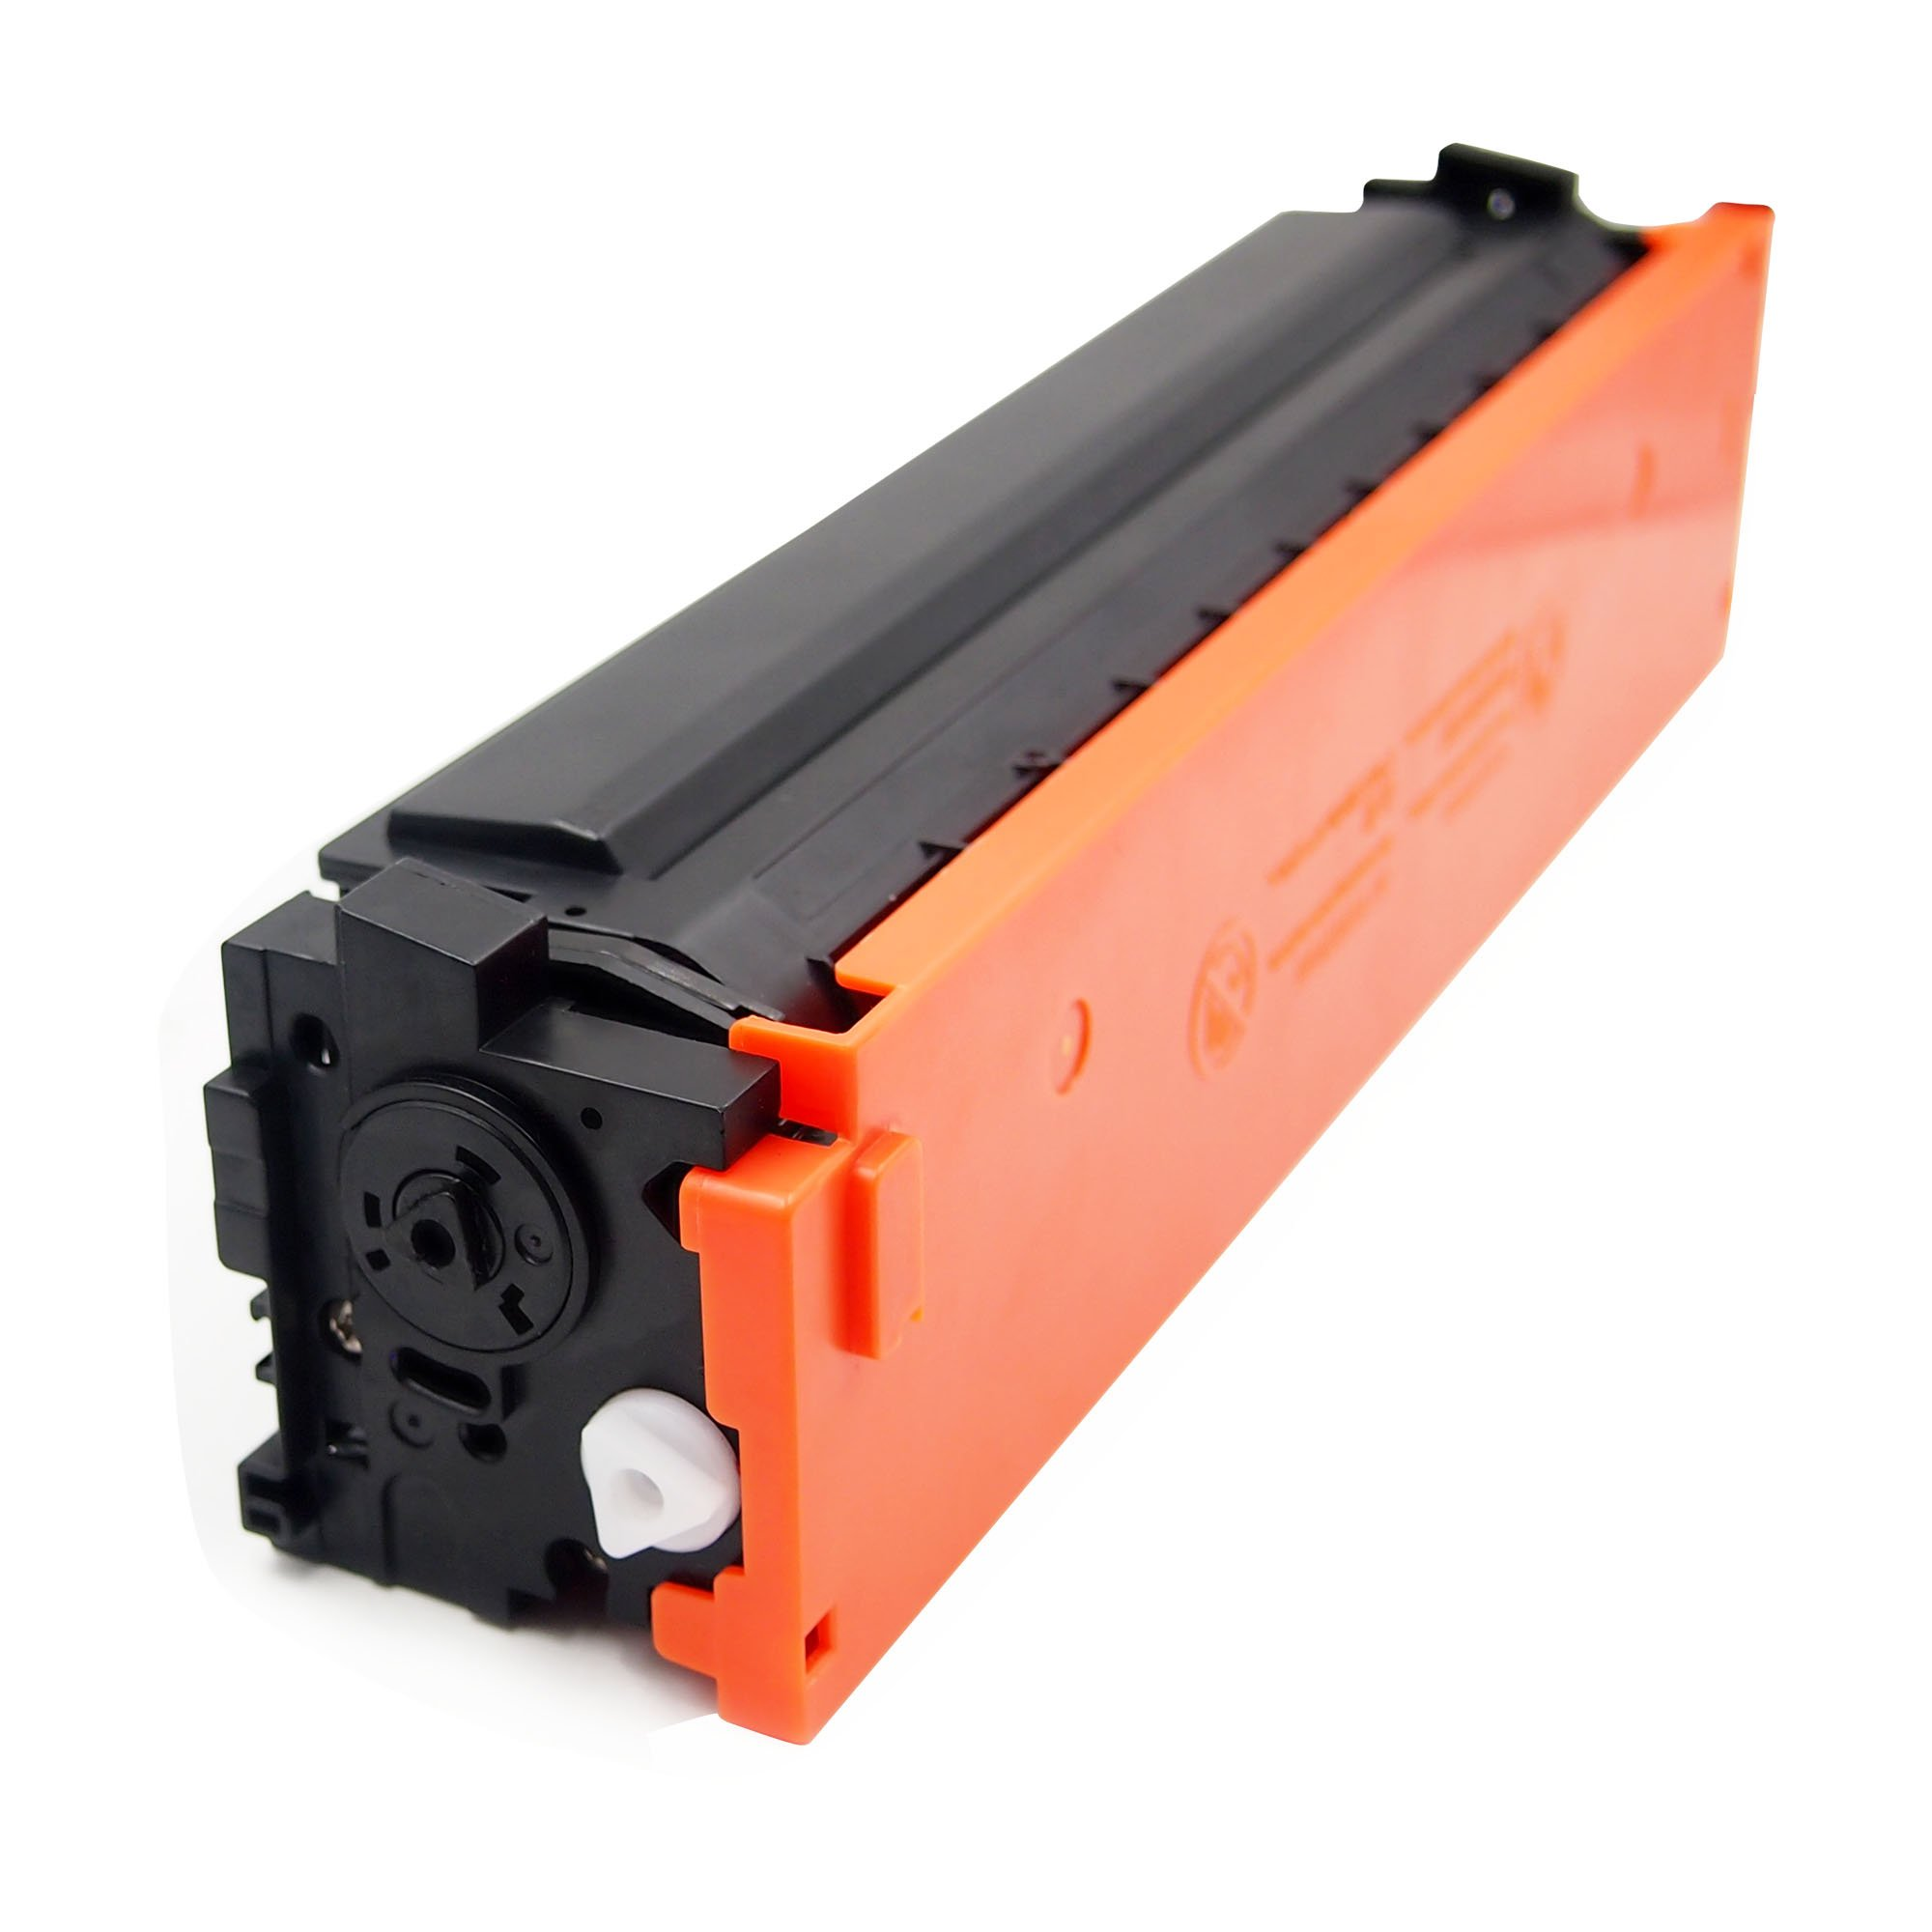 For HP 410A 410X (CF410X CF411X CF412X CF413X)Multipack (4-pack) High Yield Toner Cartridges, Compatible with Color LaserJet Pro MFP M452dn M452dw M452nw M377dw M477fdw M477fnw M477fdn Printer by HaloFox (Image #2)